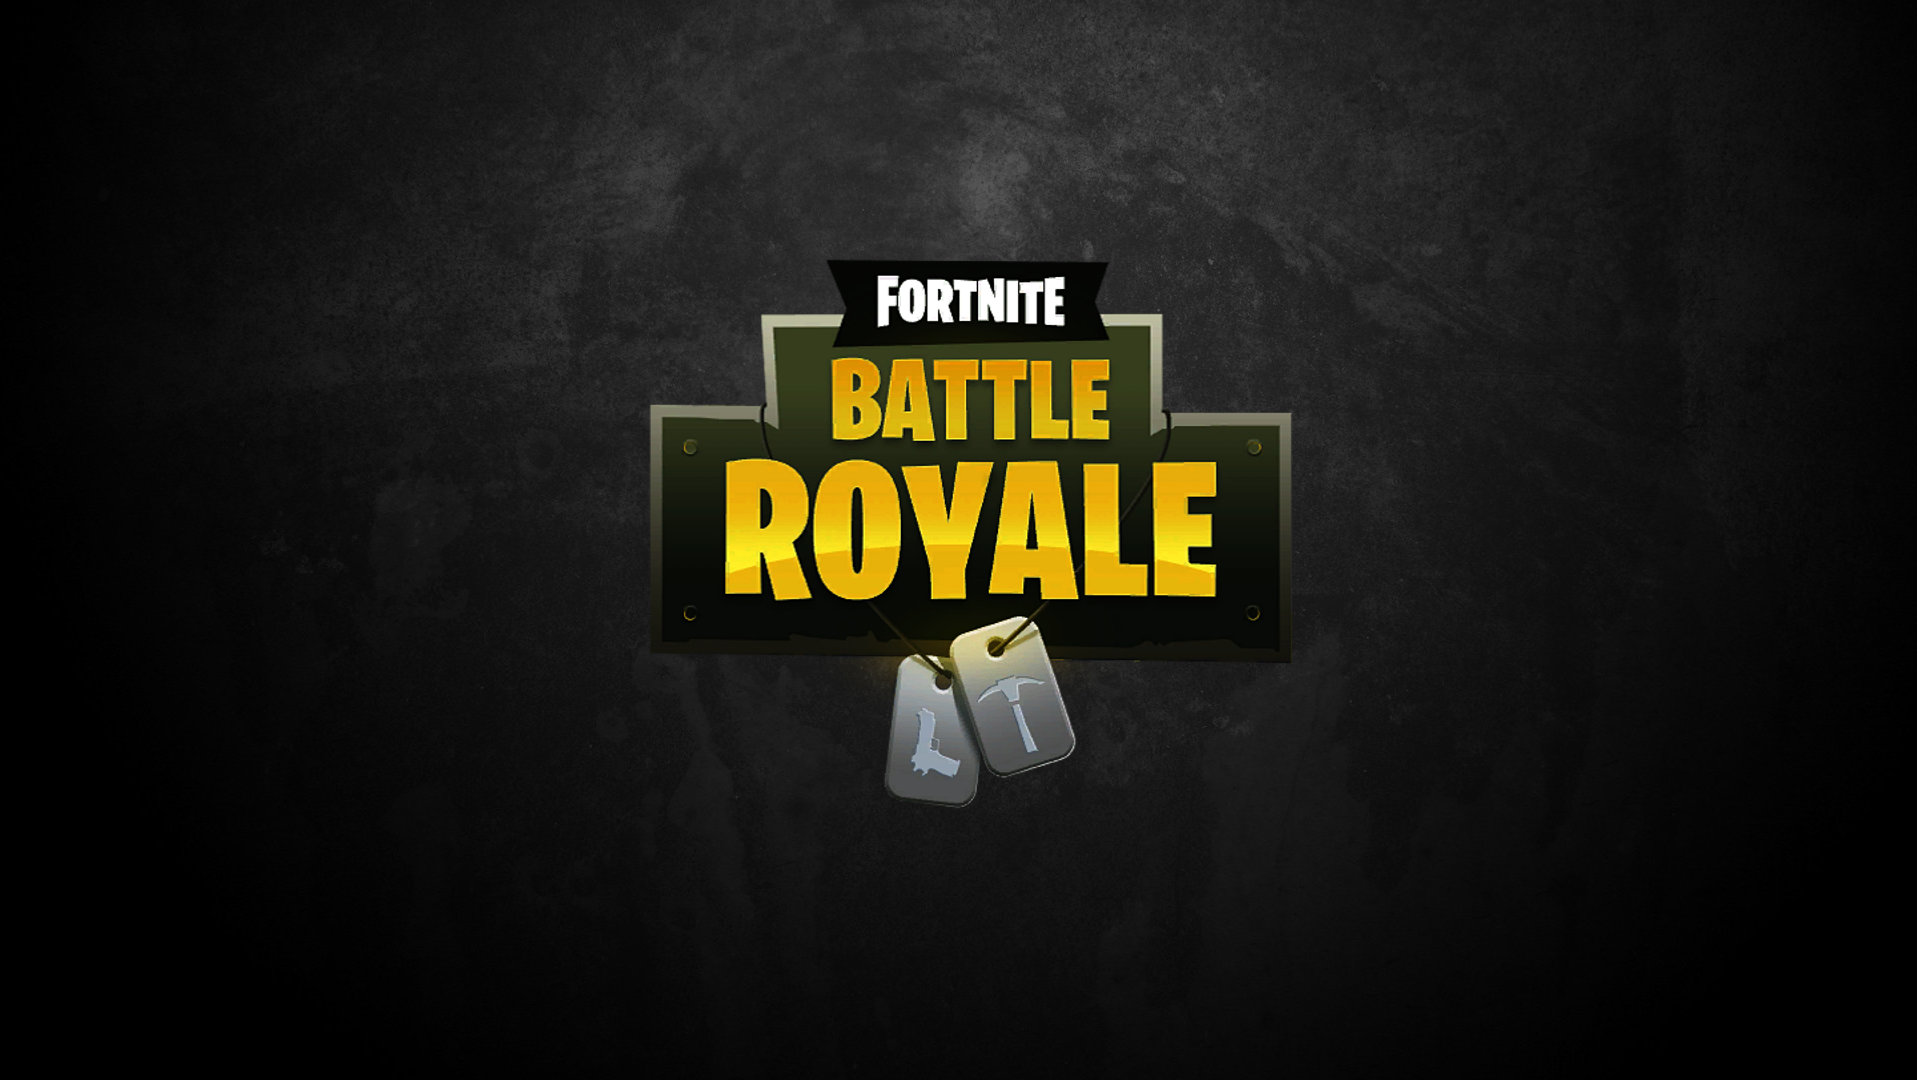 1920x1080 Fortnite Wallpaper Free Download Background Images Wallpapers Wallpaper Free Download Wallpaper Backgrounds